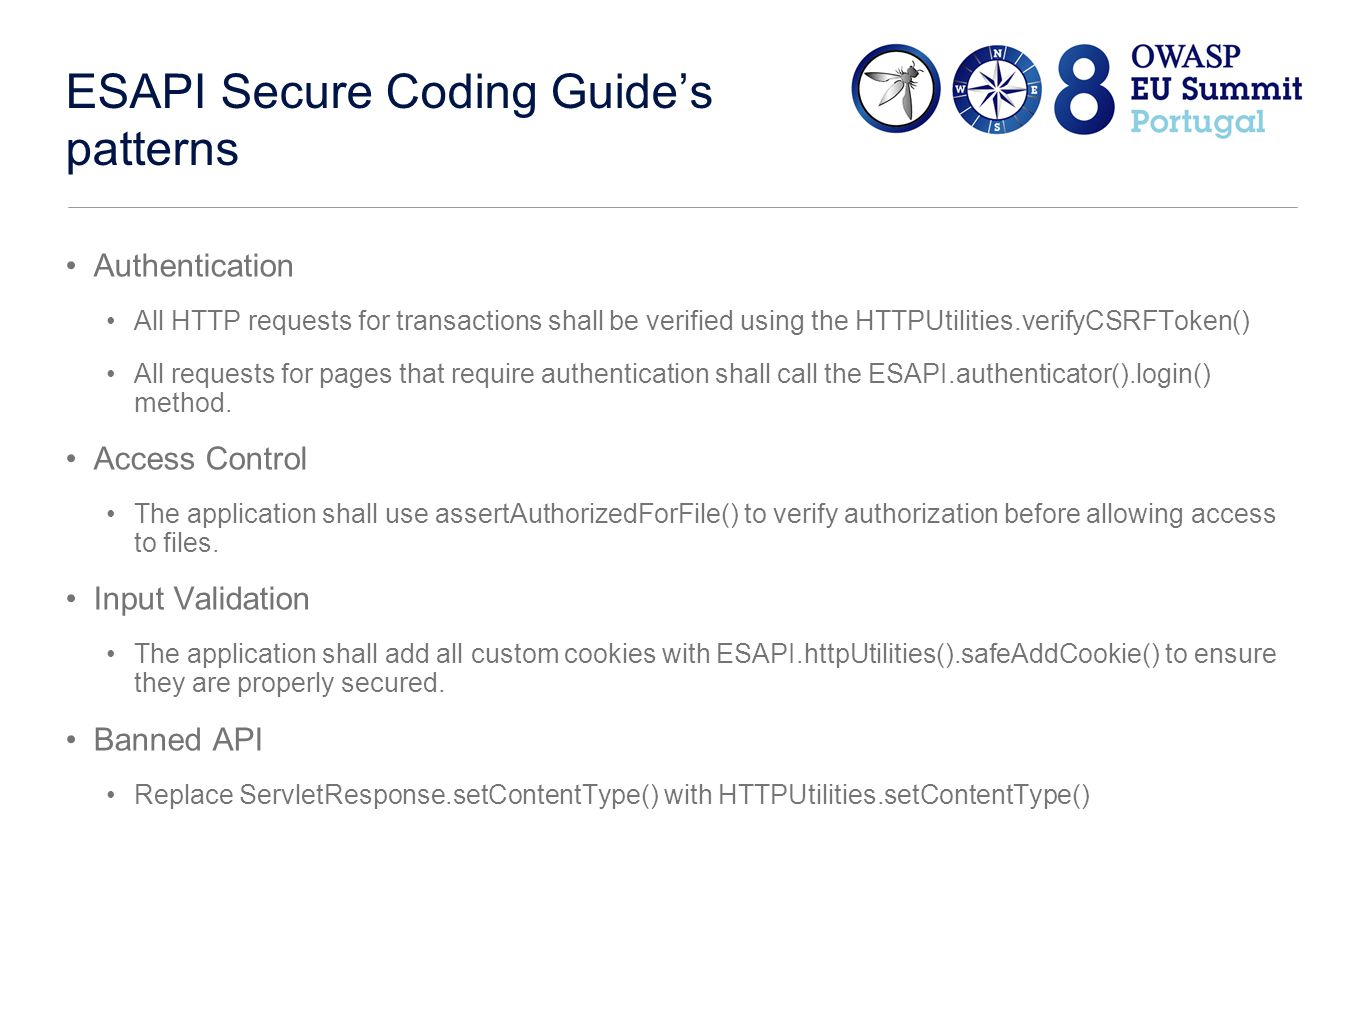 Teaching static analyzer to ESAPI ESAPI Secure Coding Guide: call stack at some program point should (not) contain some call : HTTPServlet.service() method shouldn't call ServletResponse.addCookie(), but HTTPUtilities().safeAddCookie().